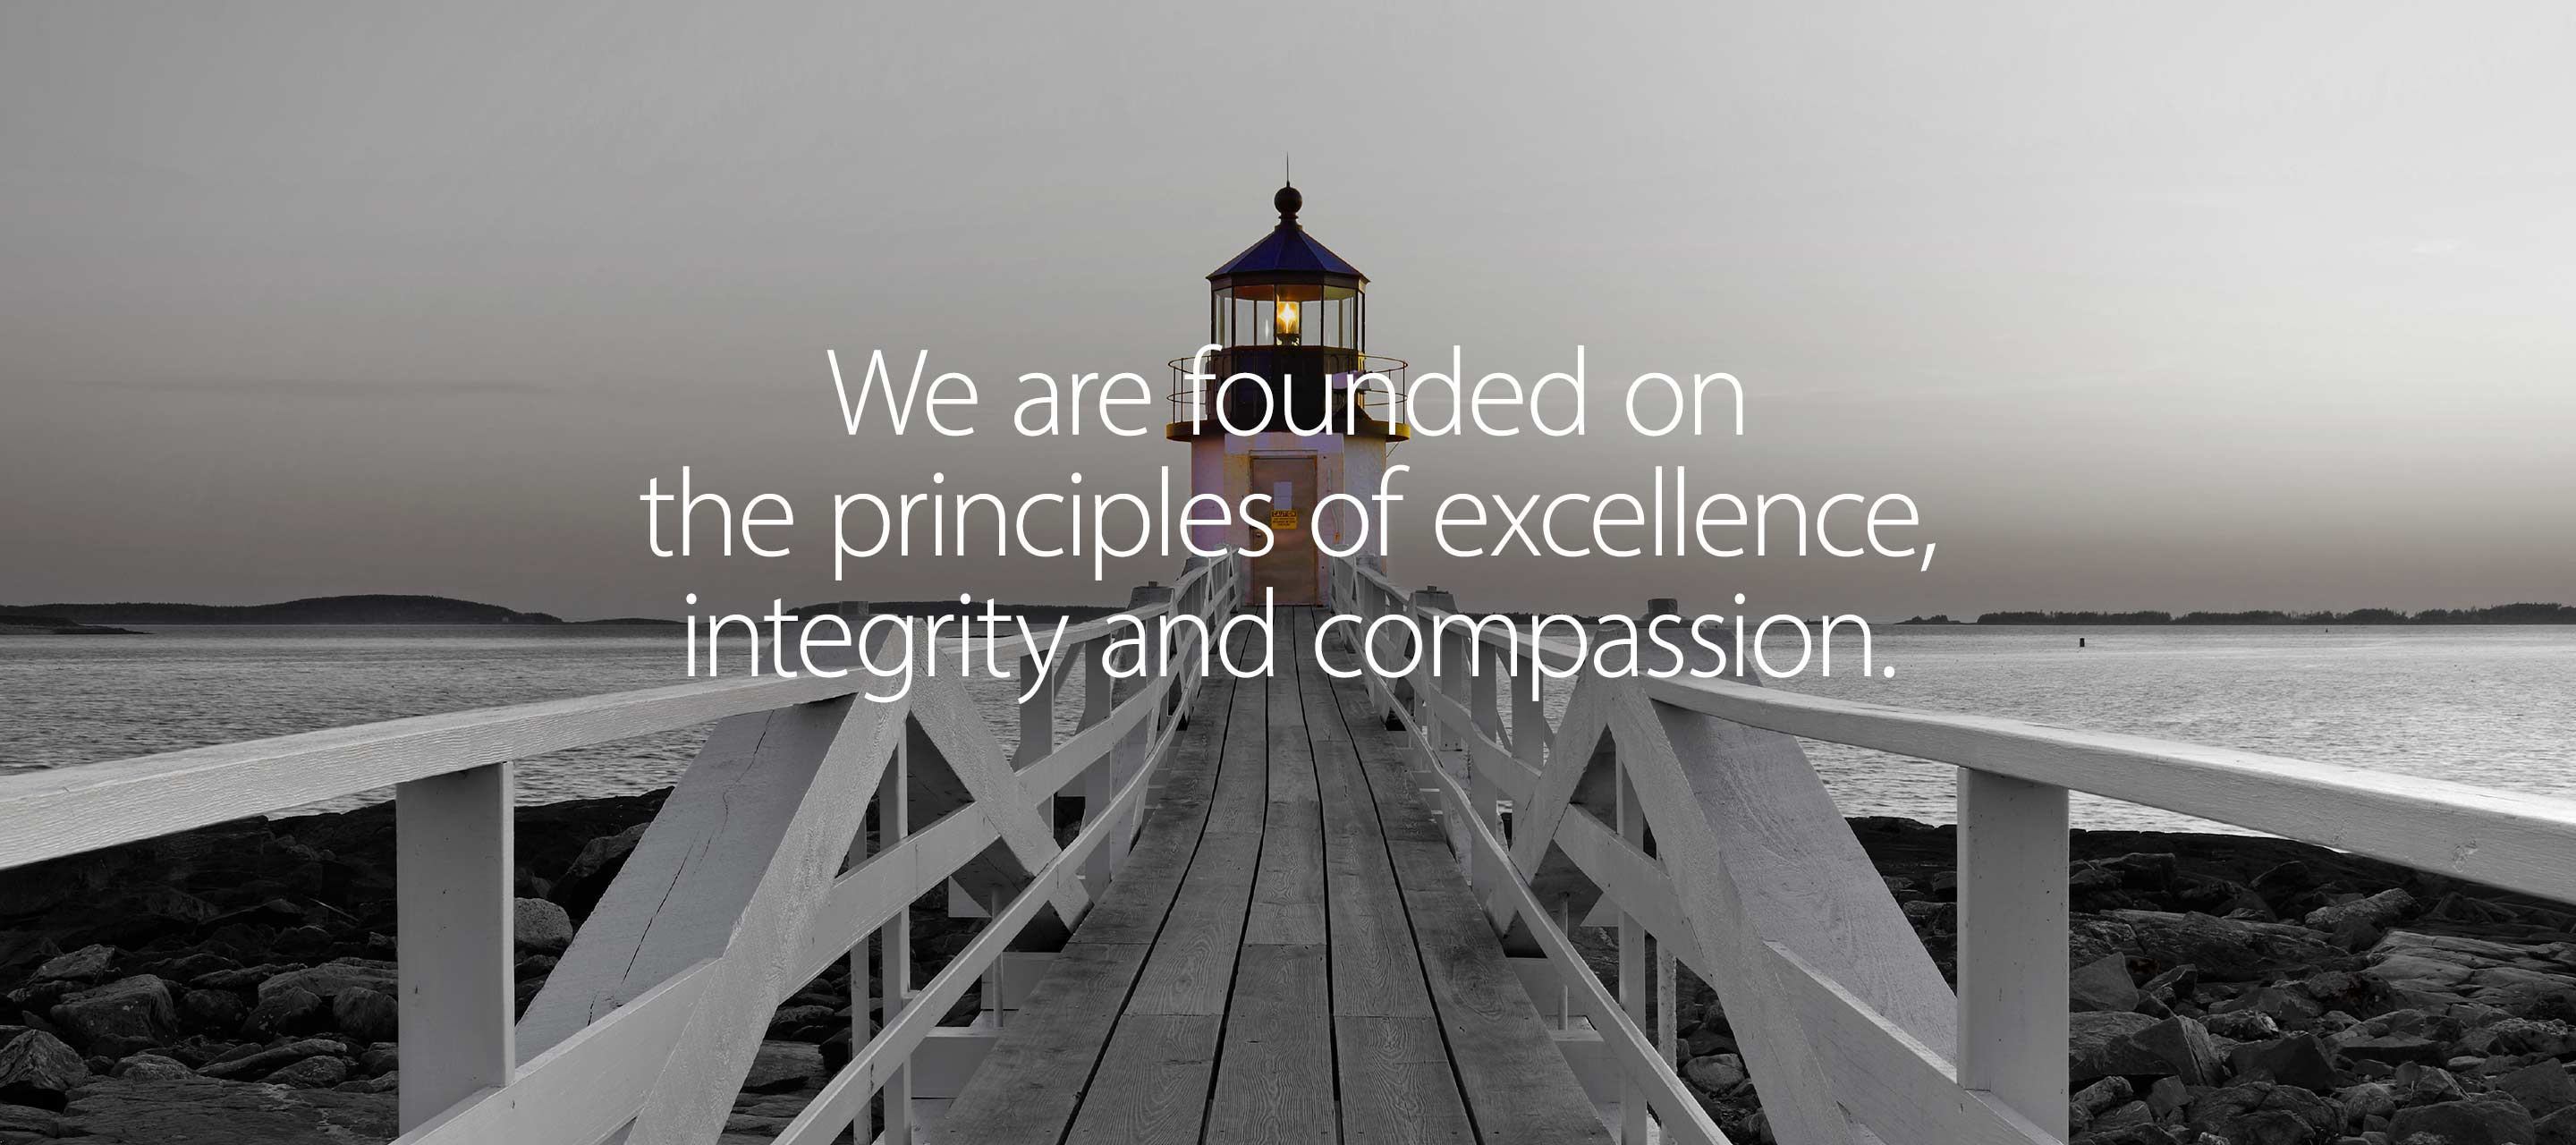 We are founded on the principles of excellence, integrity and compassion.